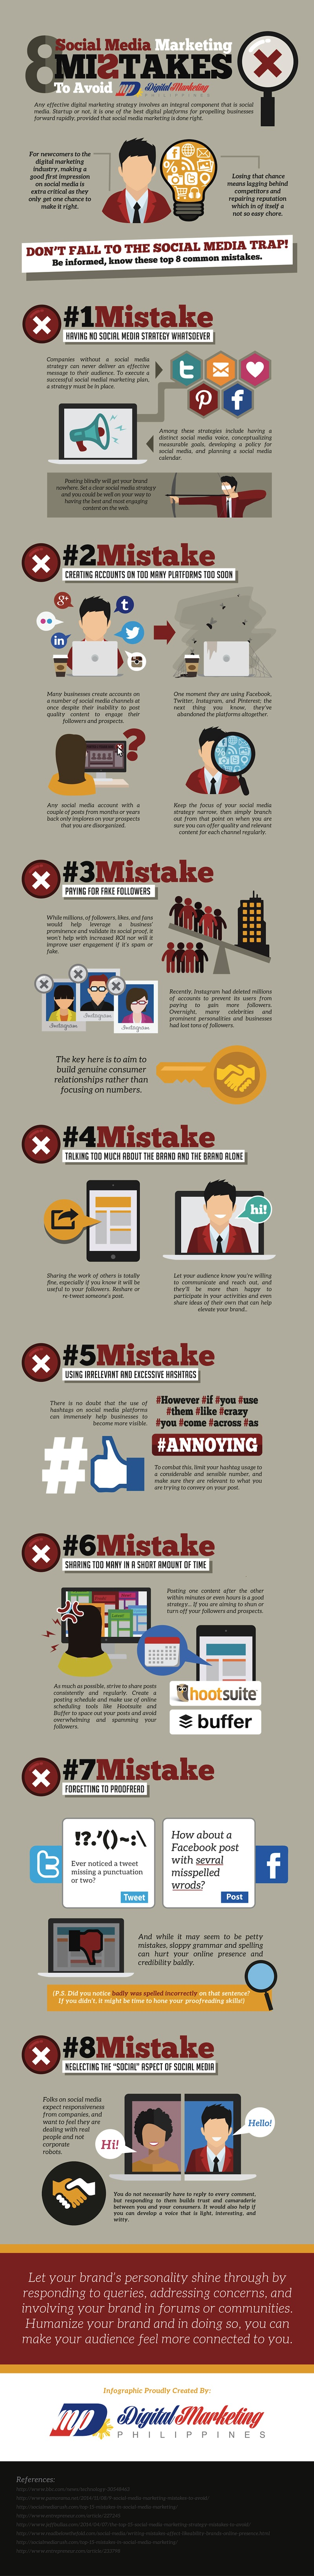 8 Social Media Marketing Mistakes to Avoid (Infographic)